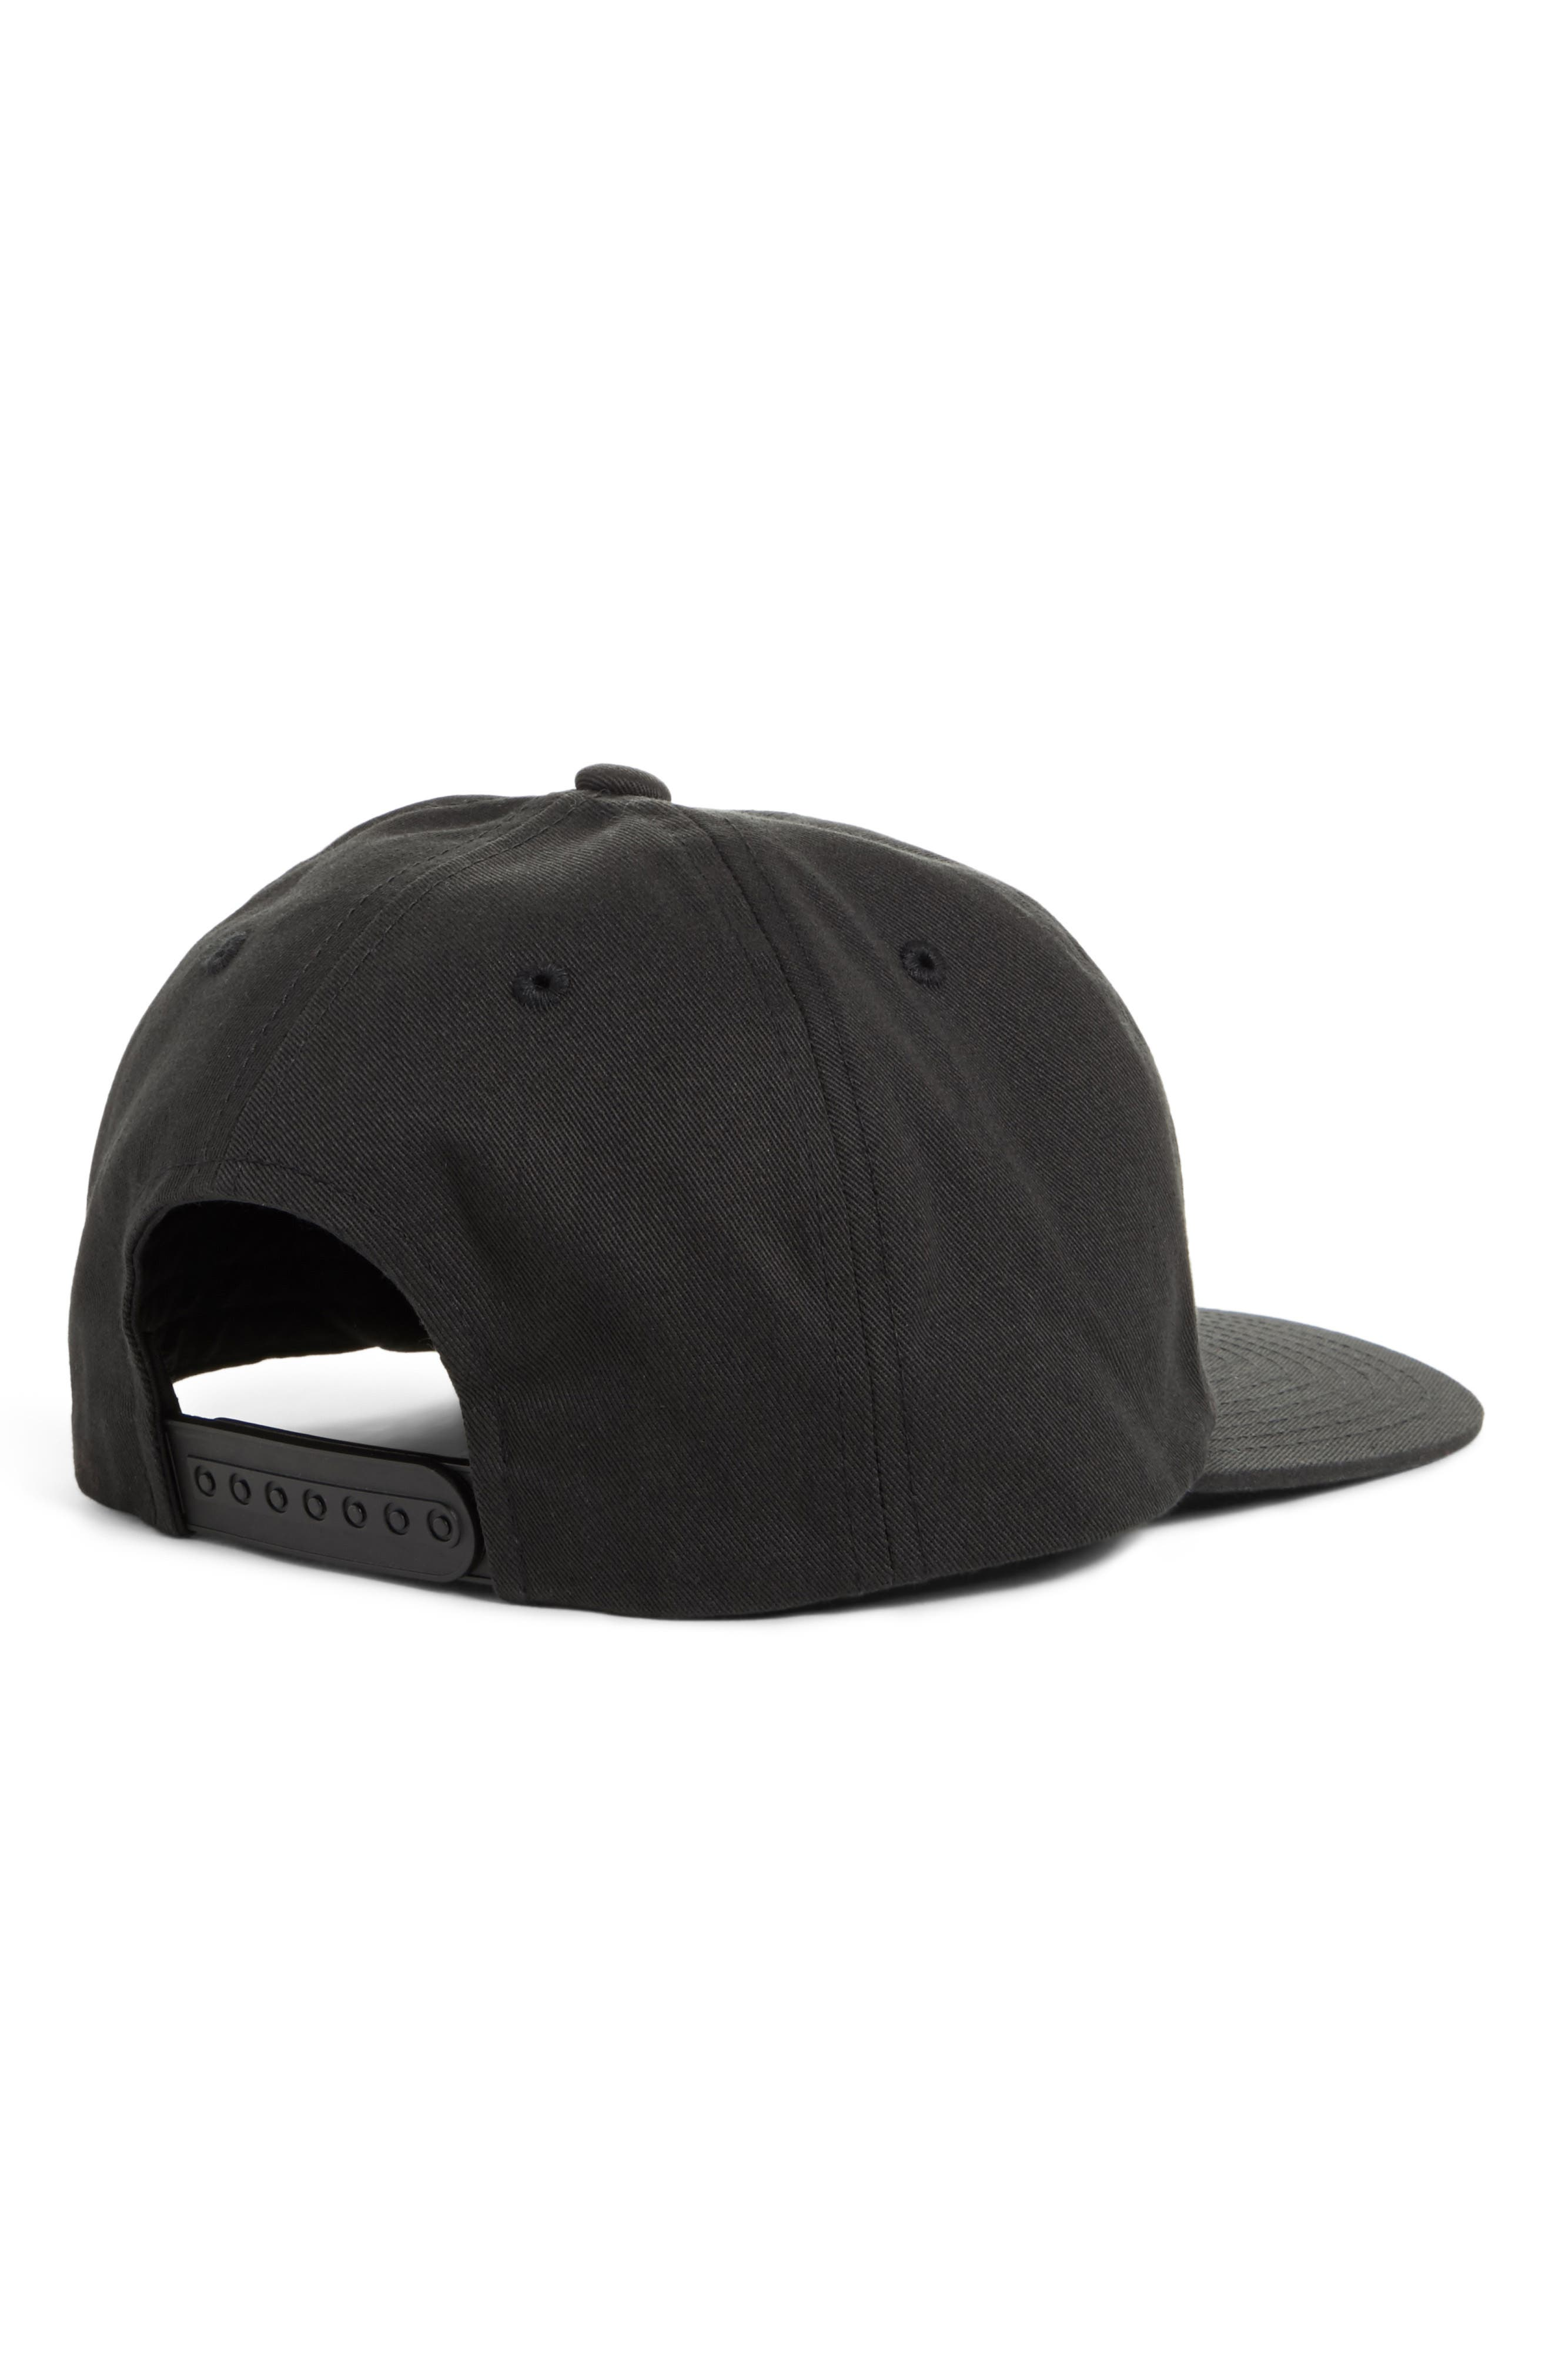 Poppy Adjustable Cap,                             Alternate thumbnail 2, color,                             Tnf Black